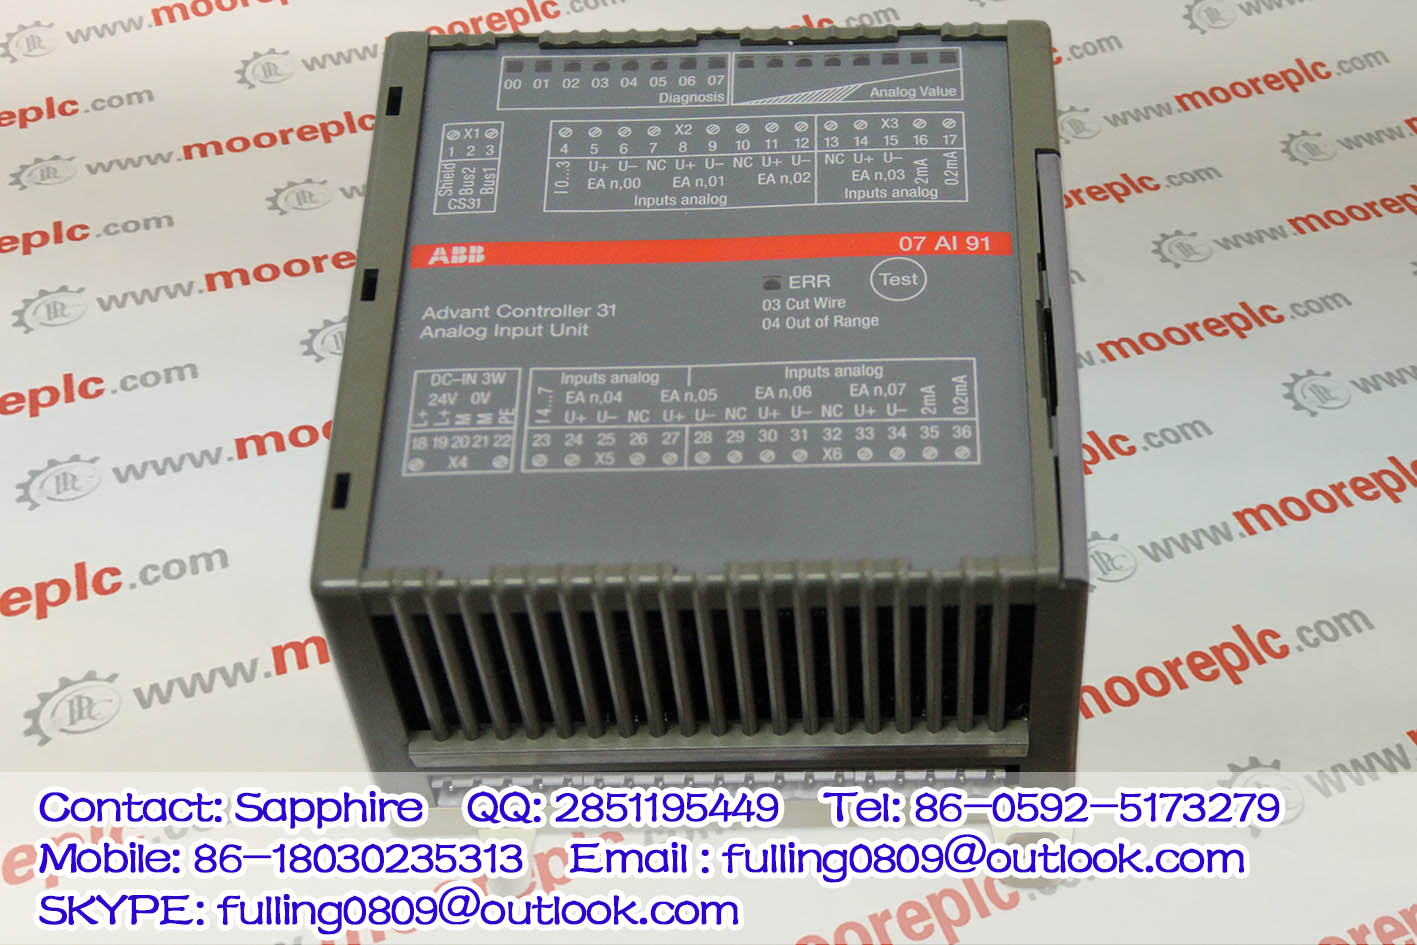 Prosof Communication Module MVI46-MBP for sale